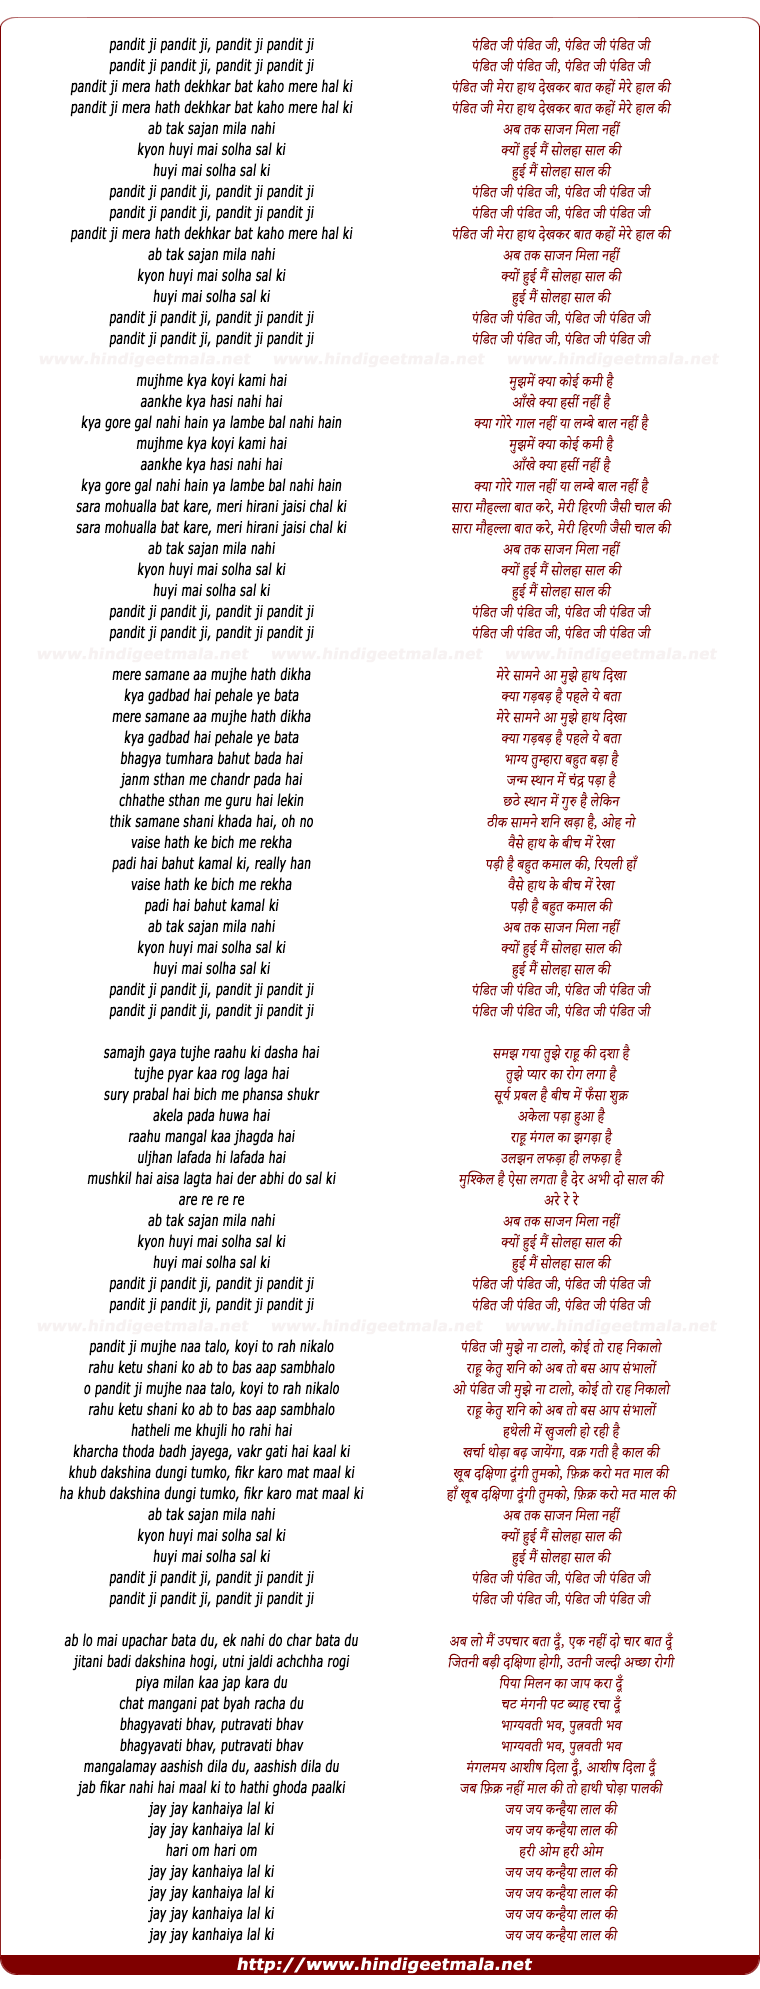 lyrics of song Pandit Jee Meraa Hath Dekhakar Baat Kaho